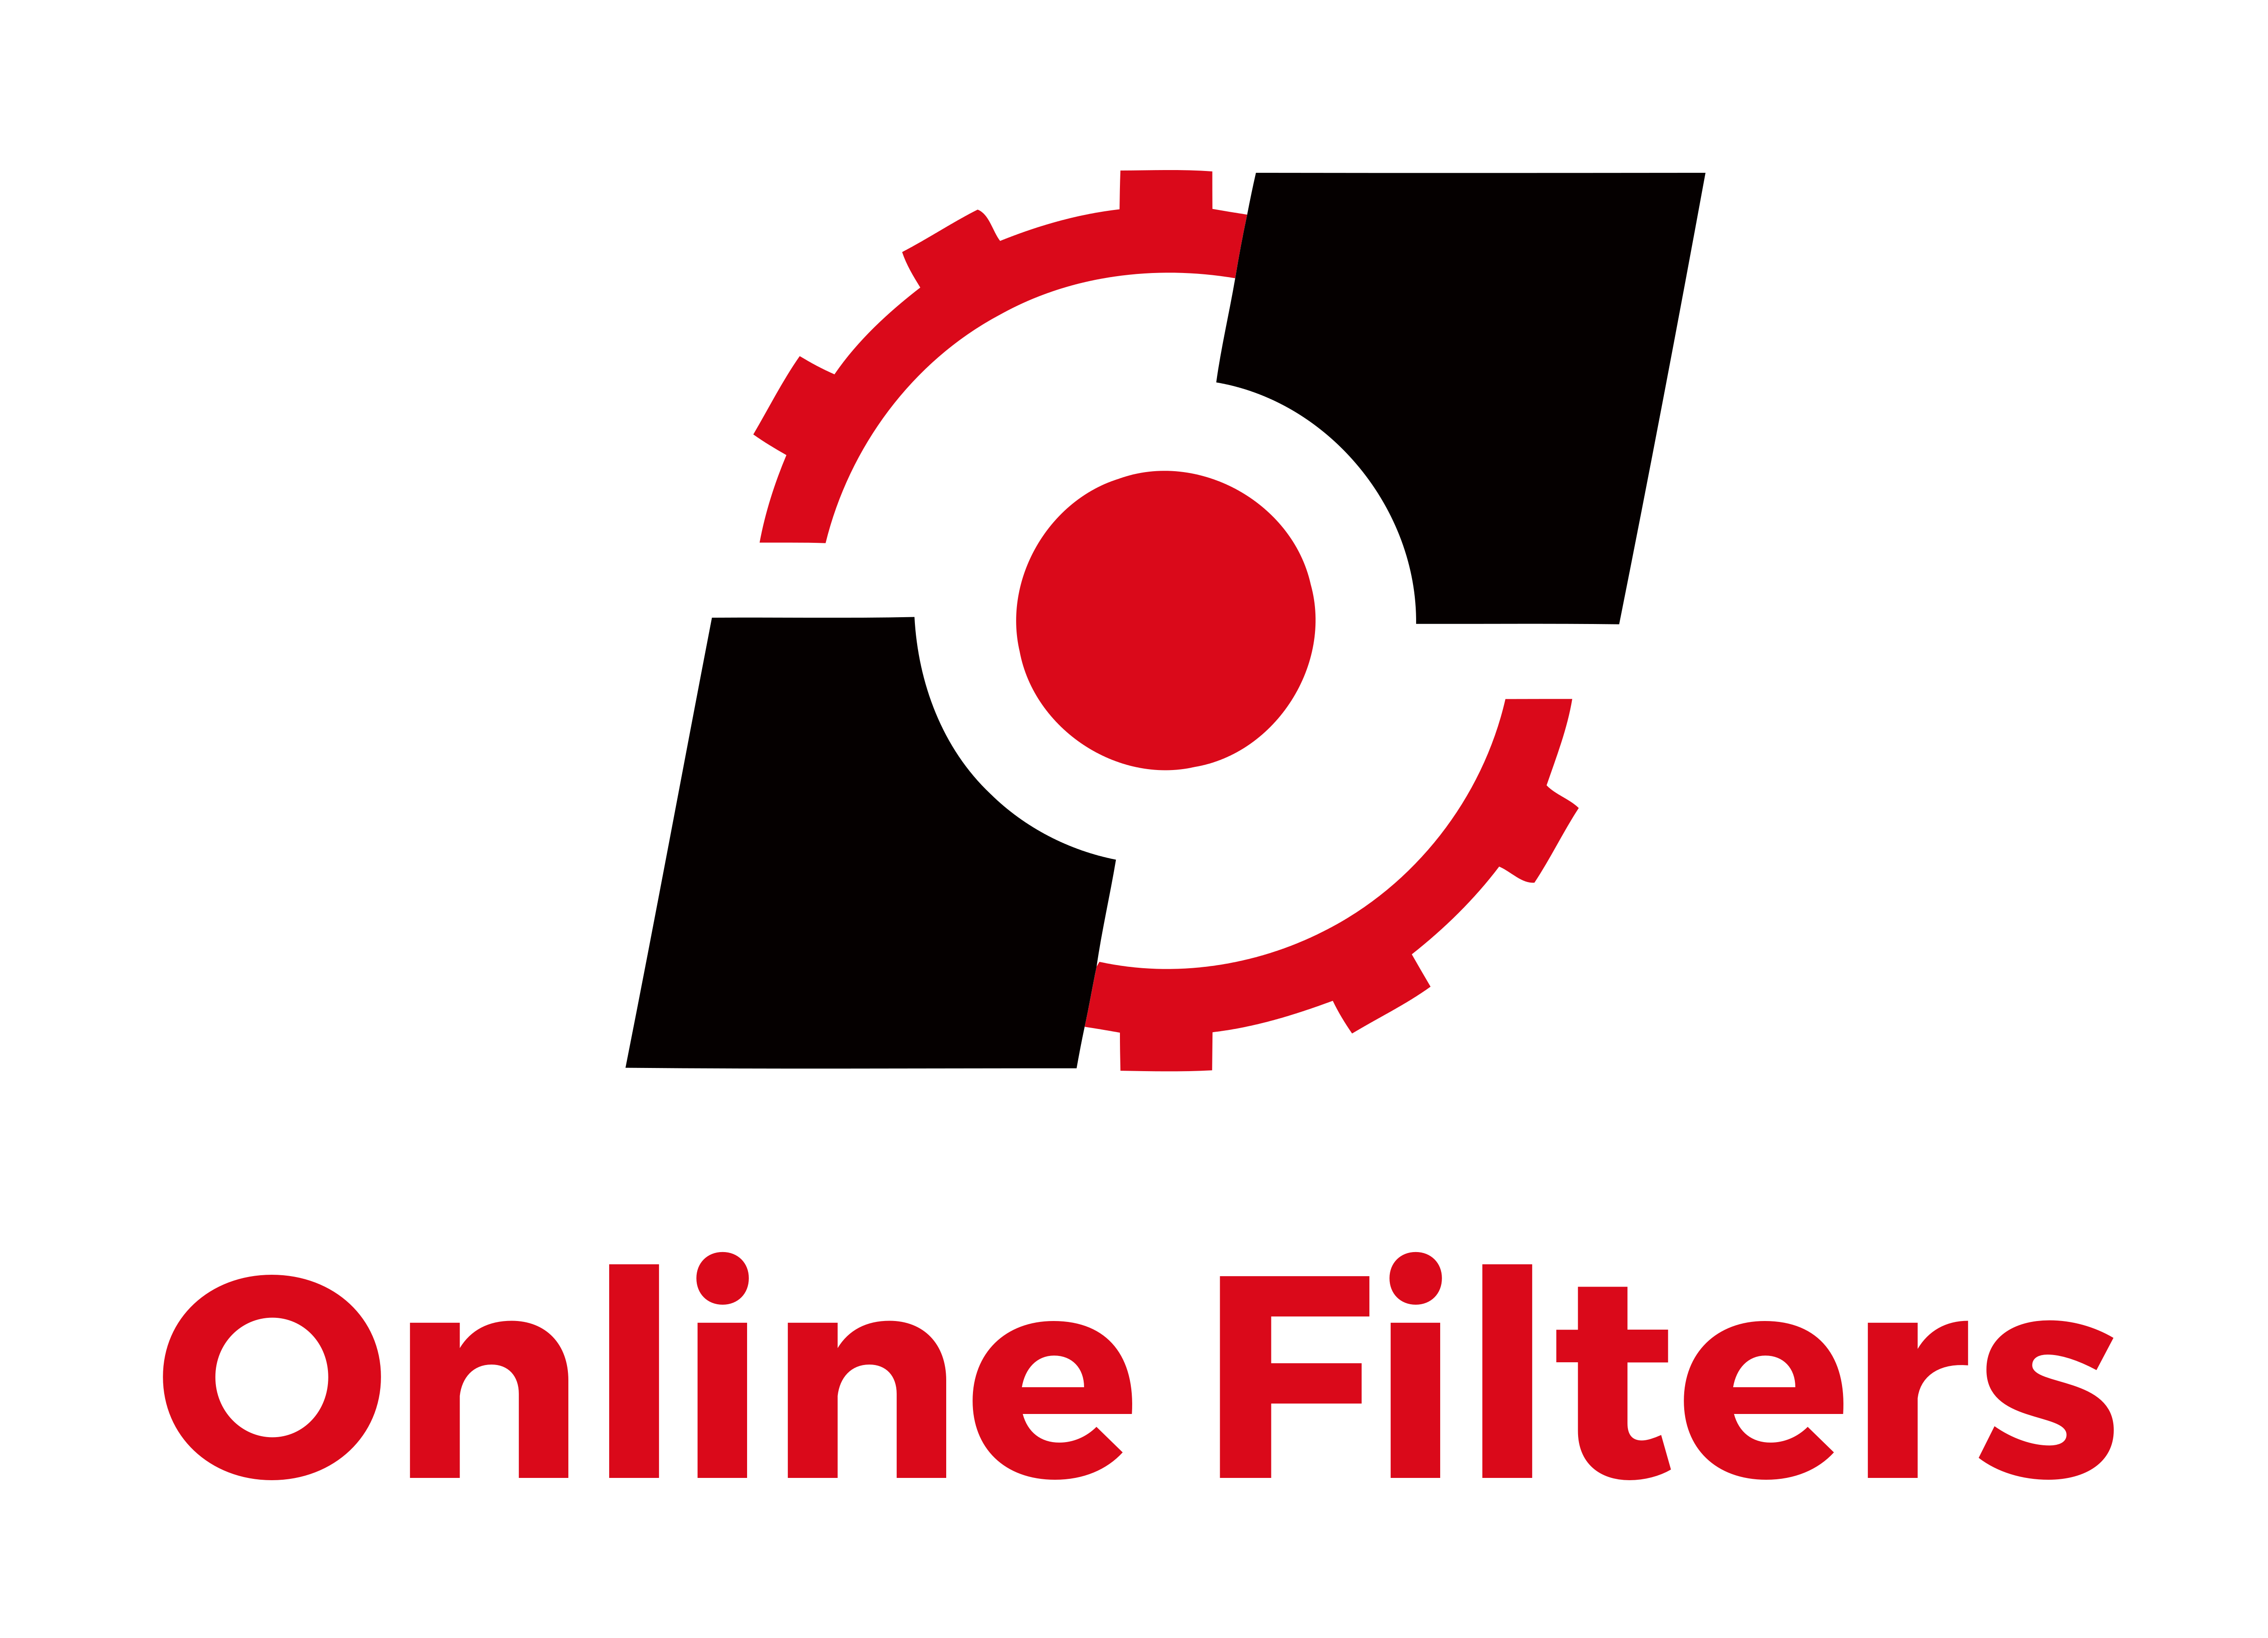 Online Filters